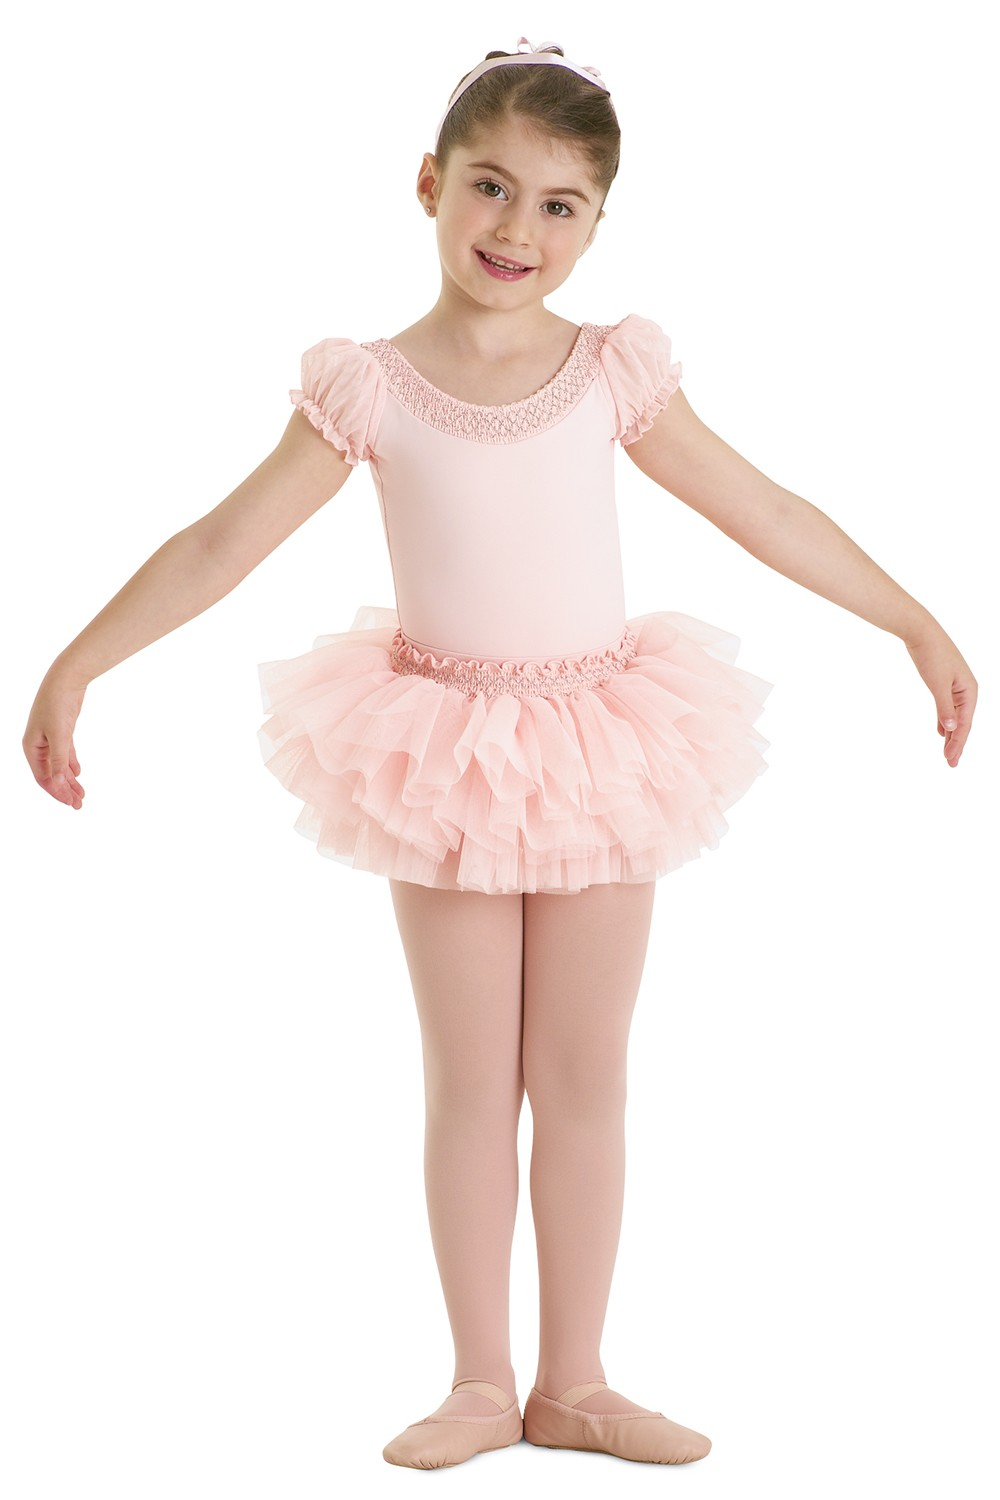 Peri - Waist Tutu Children's Dance Skirts